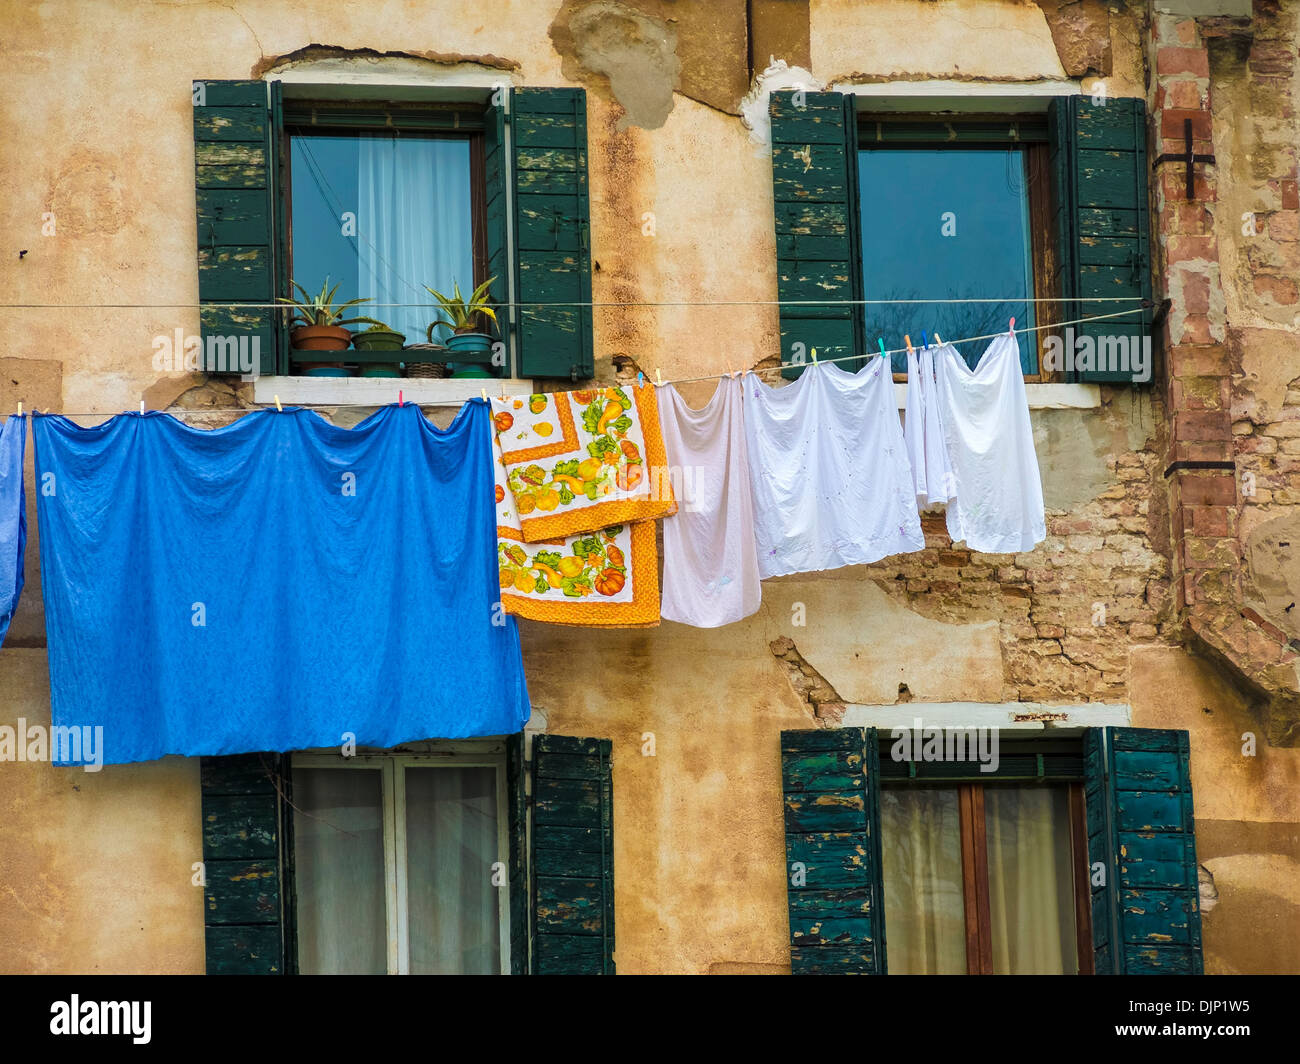 Brightly coloured laundry hanging on washing line between shuttered windows, Venice, Italy - Stock Image